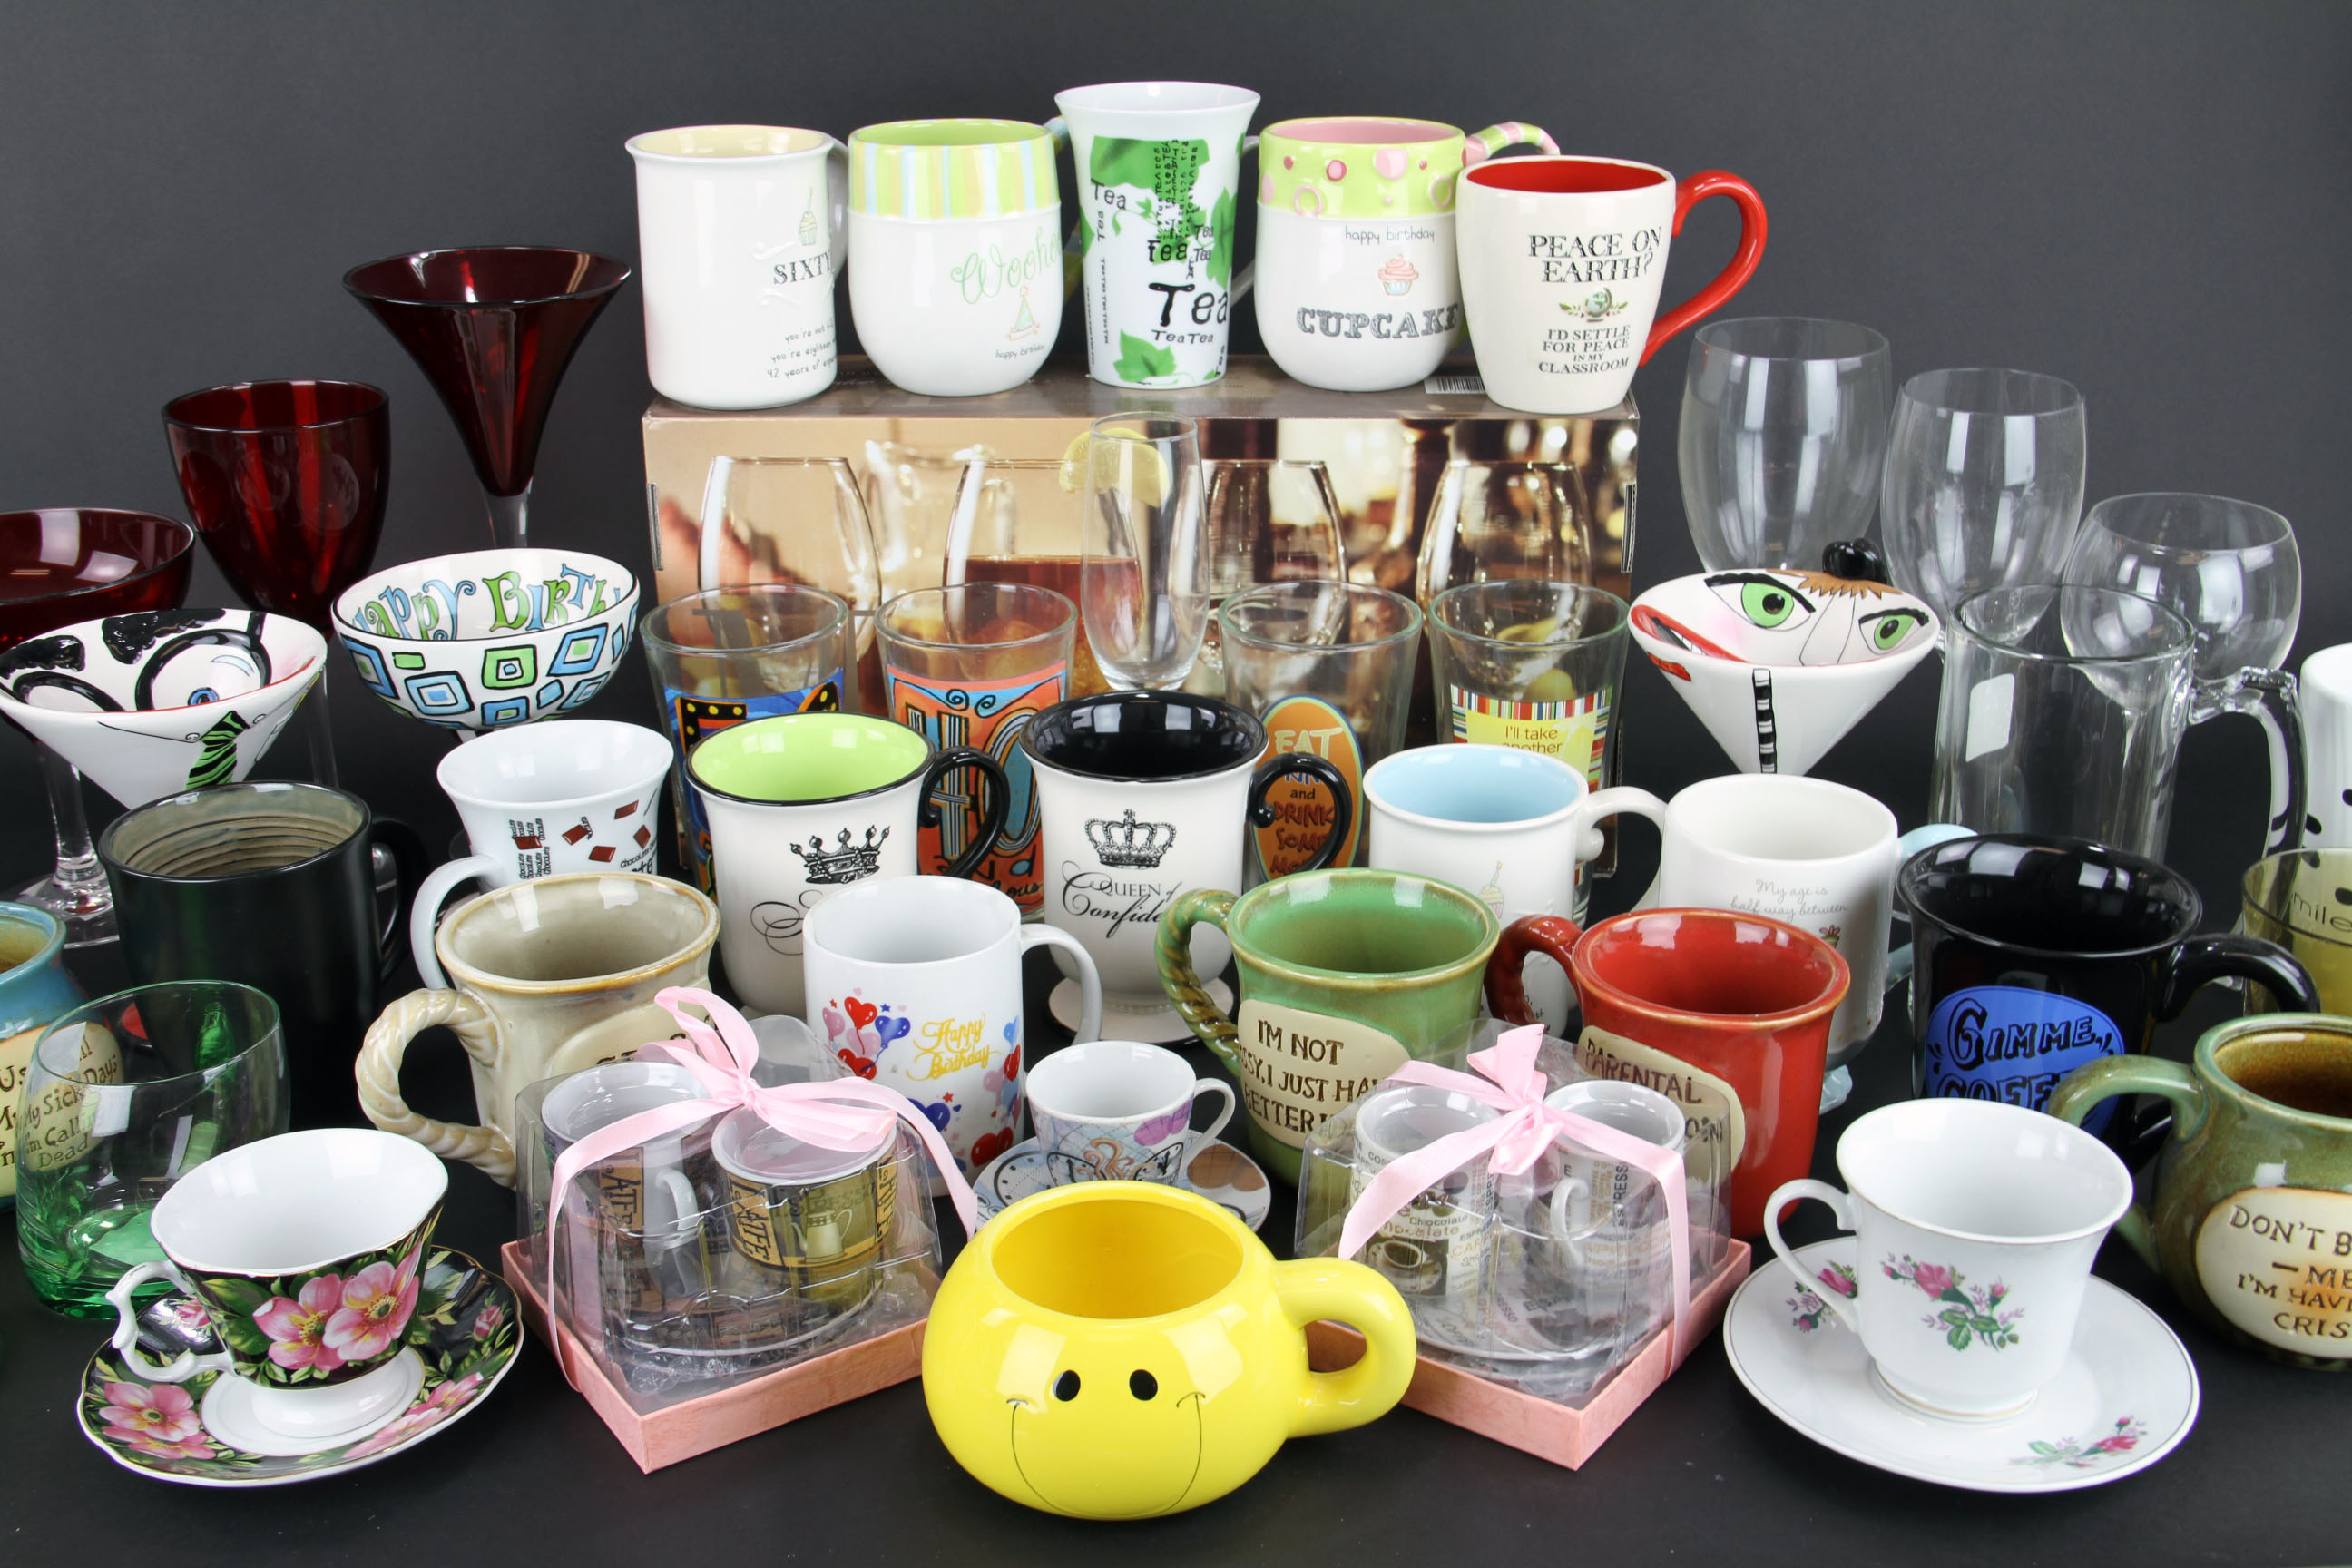 Designer Cups And Mugs Decorative Cups And Mugs Are 25 Off 6 20 11 6 25 11